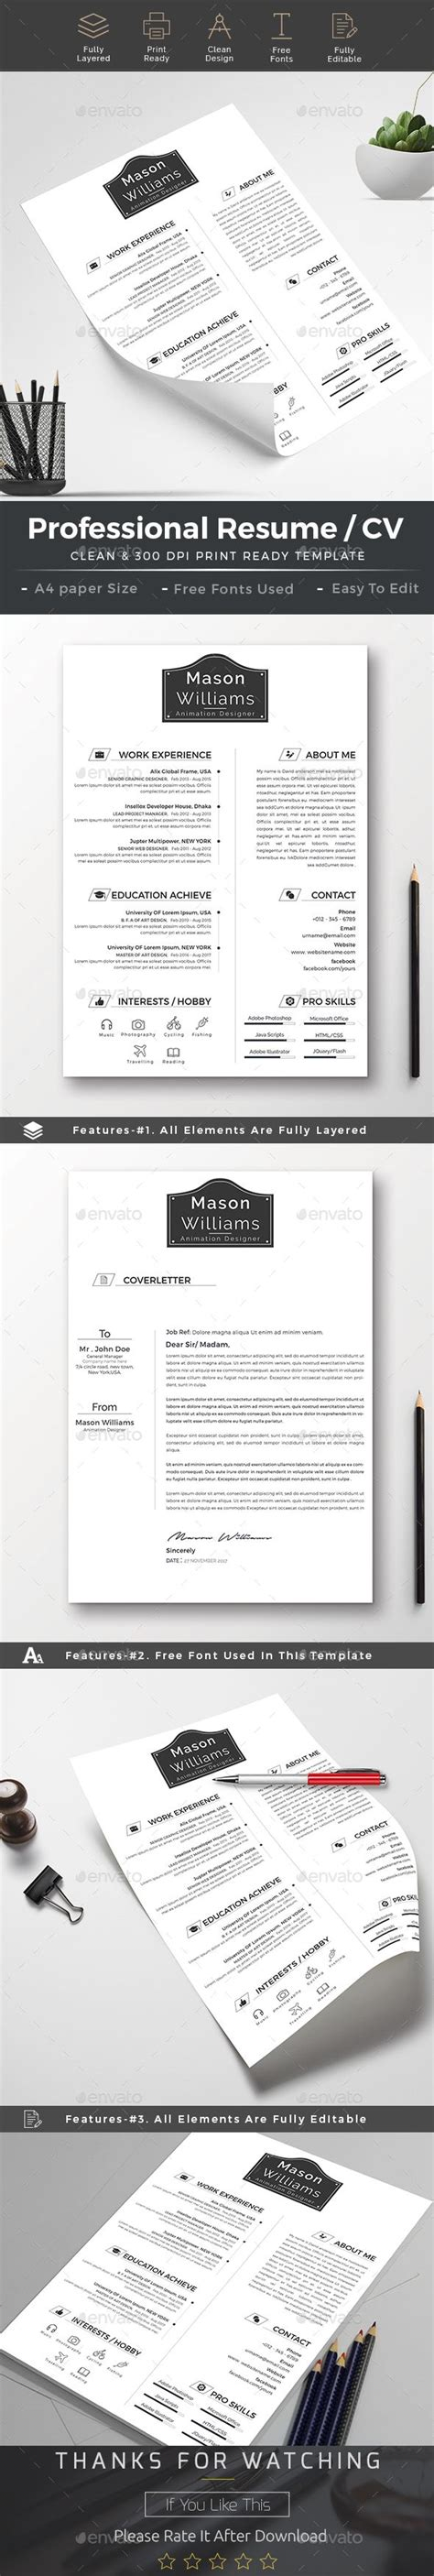 1000 ideas about resume templates on pinterest resume